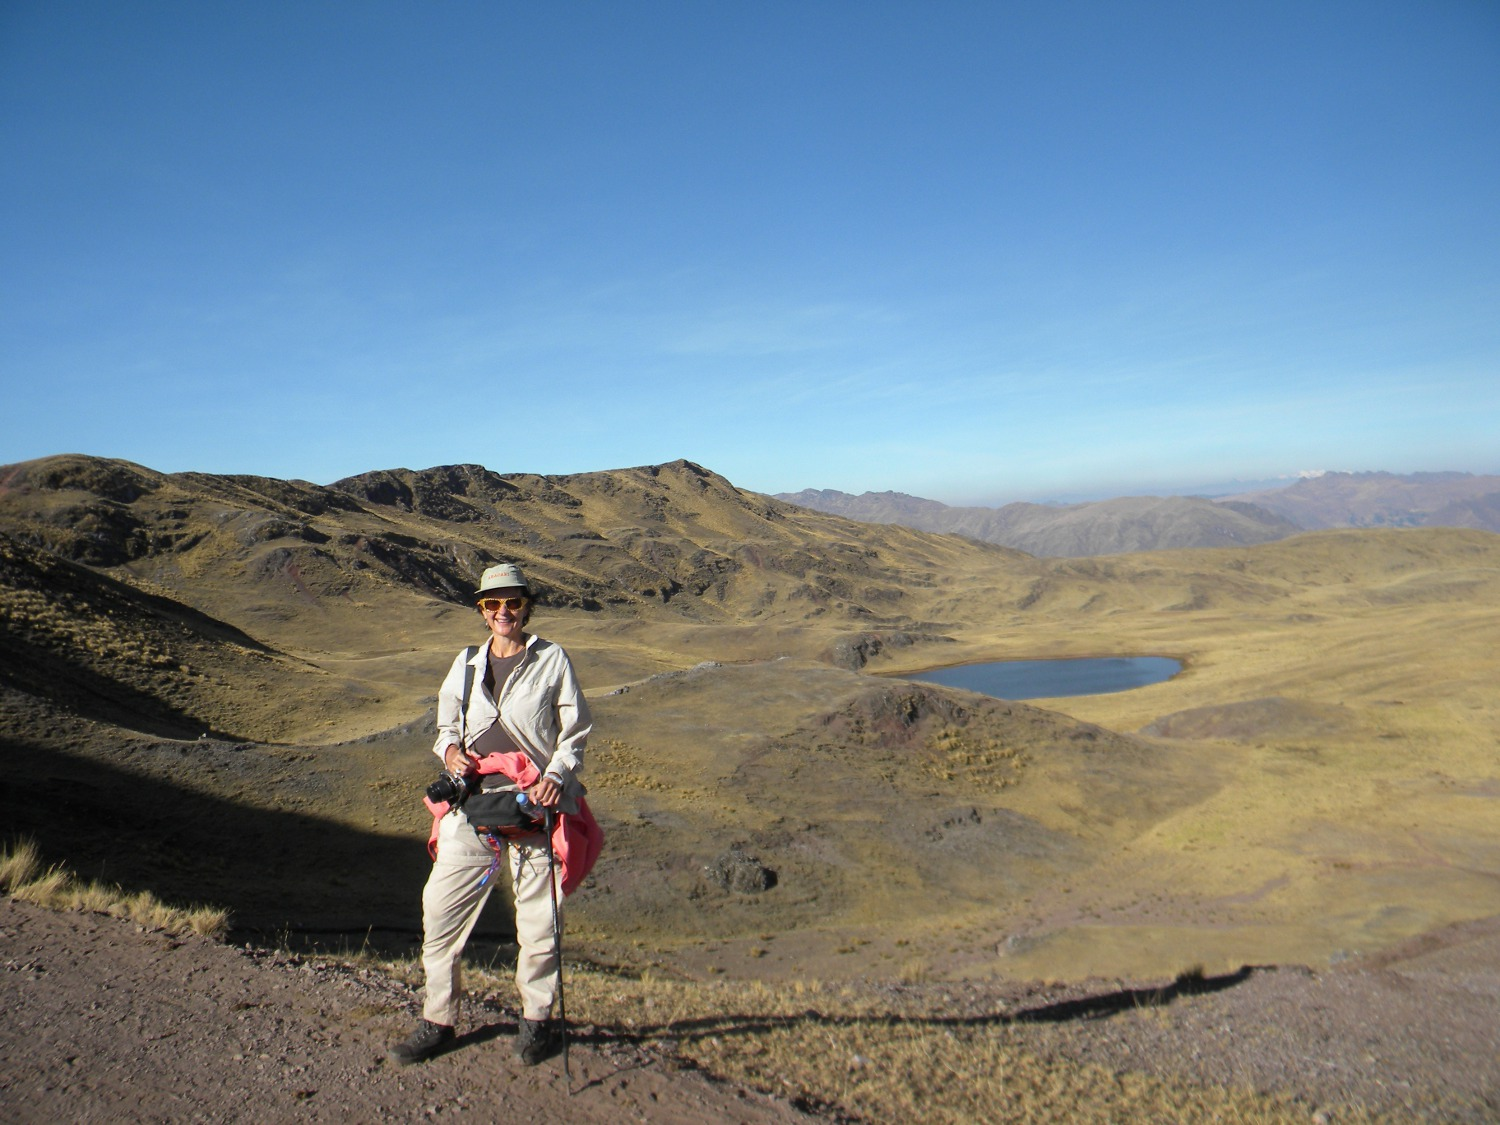 On top of the world: Marisol Mosquera on Travel + Leisure A-List 2010, Aracari Travel